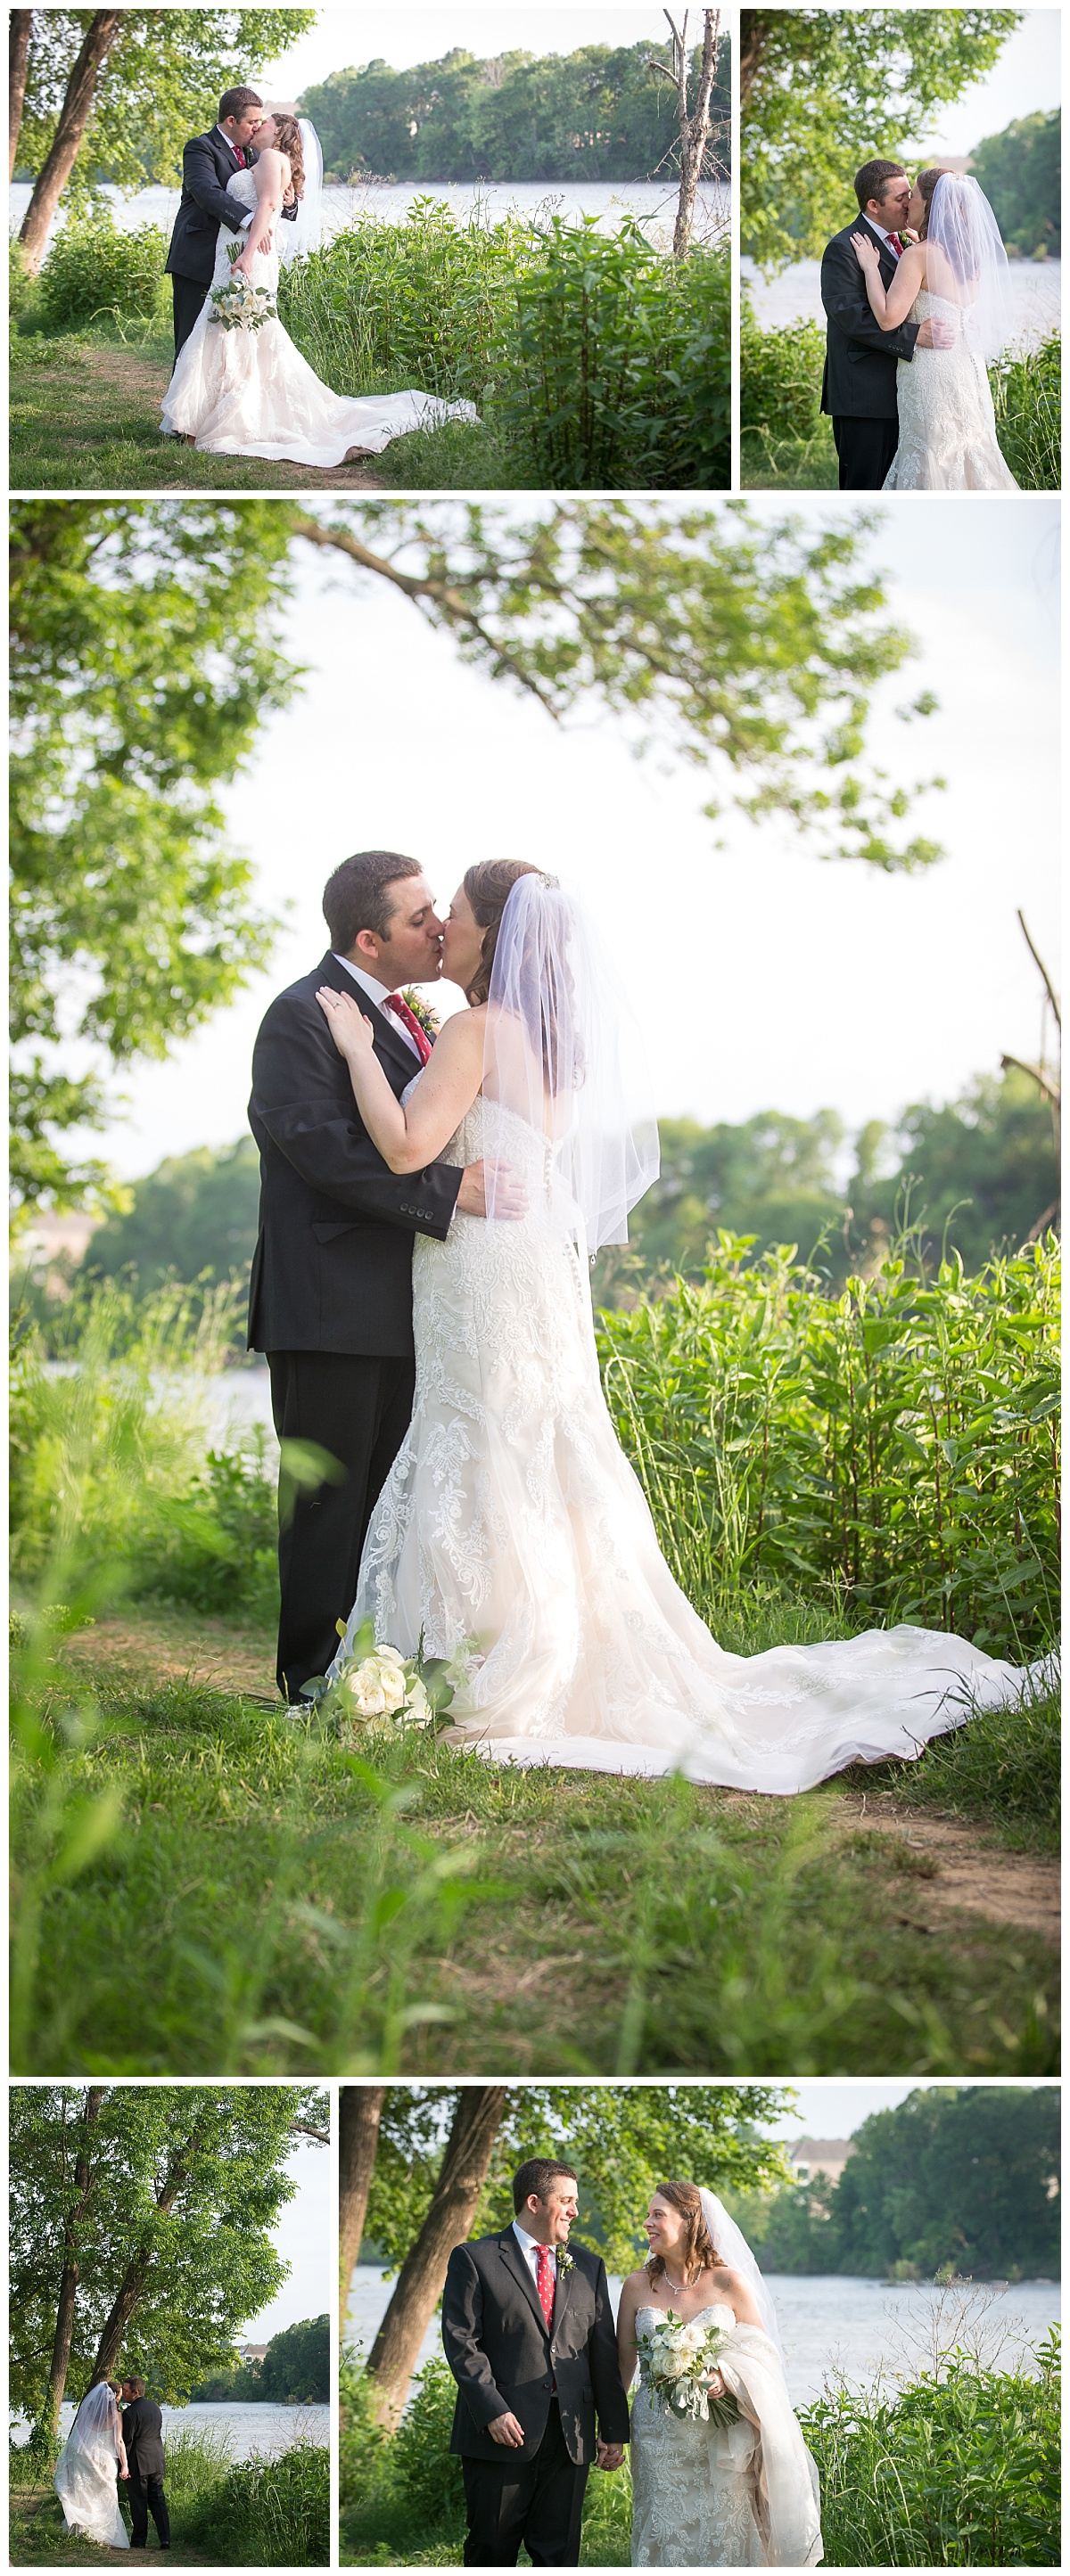 Bride and groom on the congaree river by senate's end